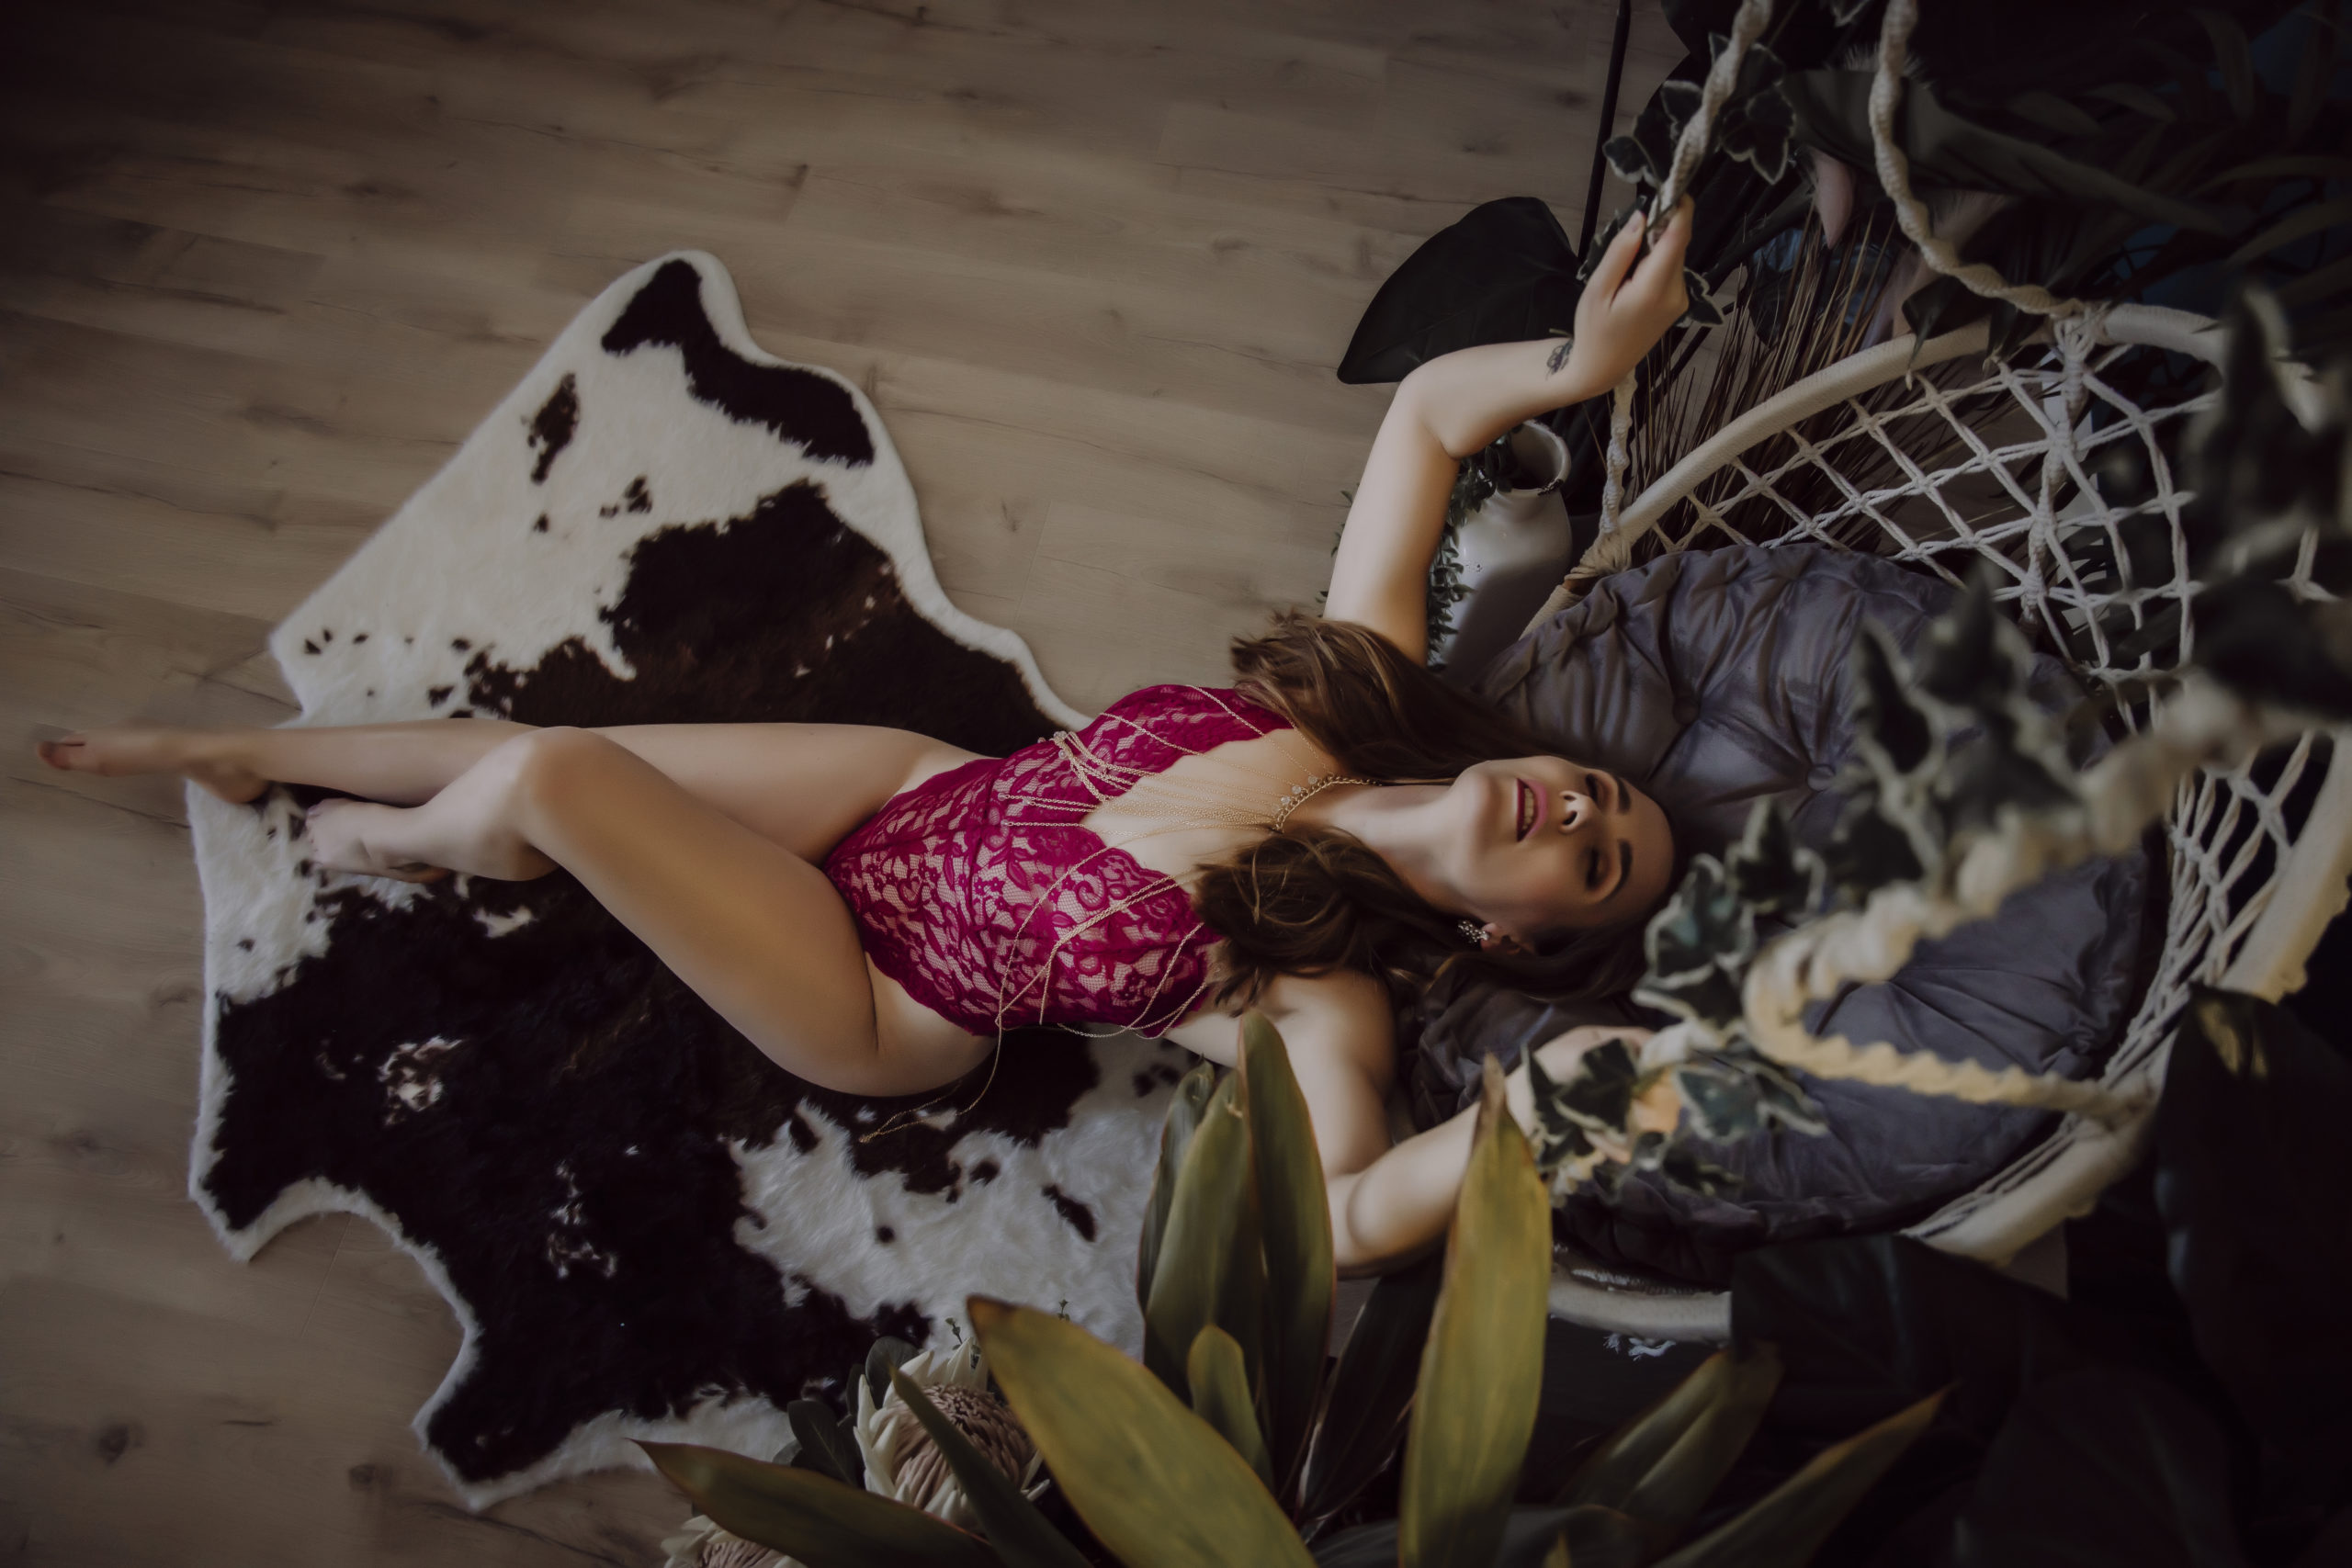 Brisbane Boudoir Photography client posing in red lingerie on a cowhide rug